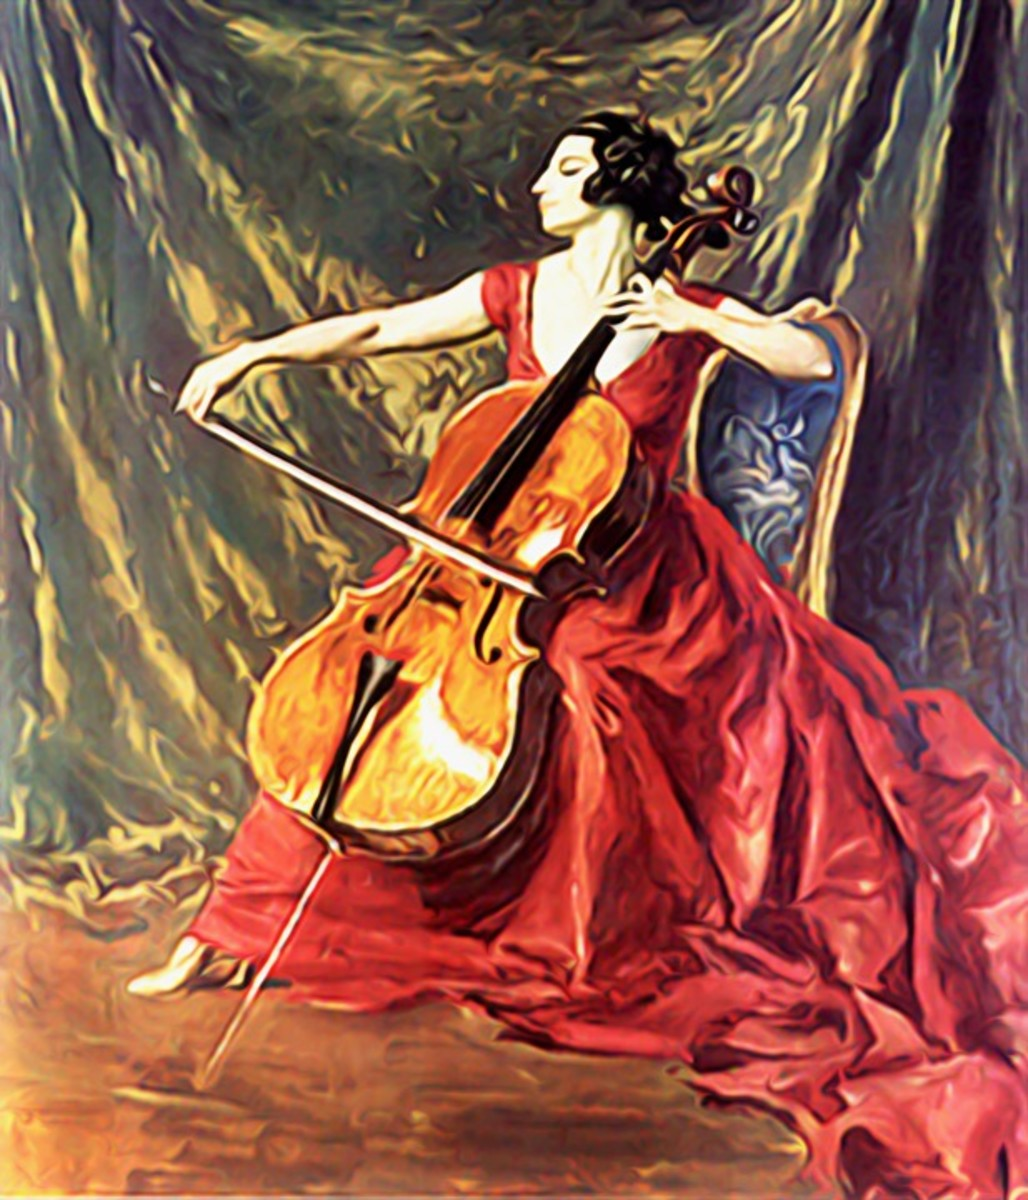 Violin, music, woman playing violin Chromesthesia